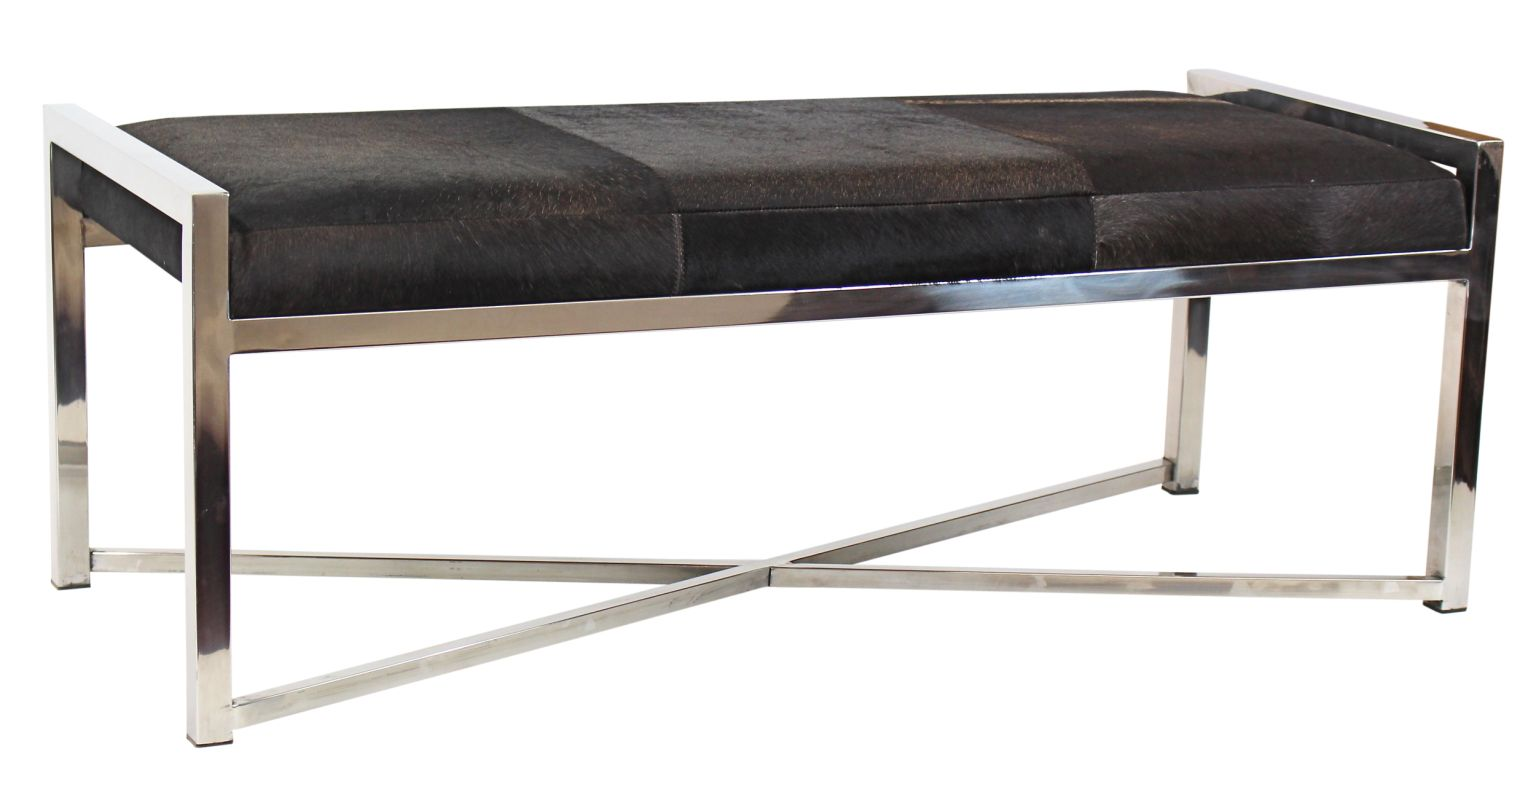 Aspire Home Accents 4507 Garrison Stainless Steel Bench - Brown Silver